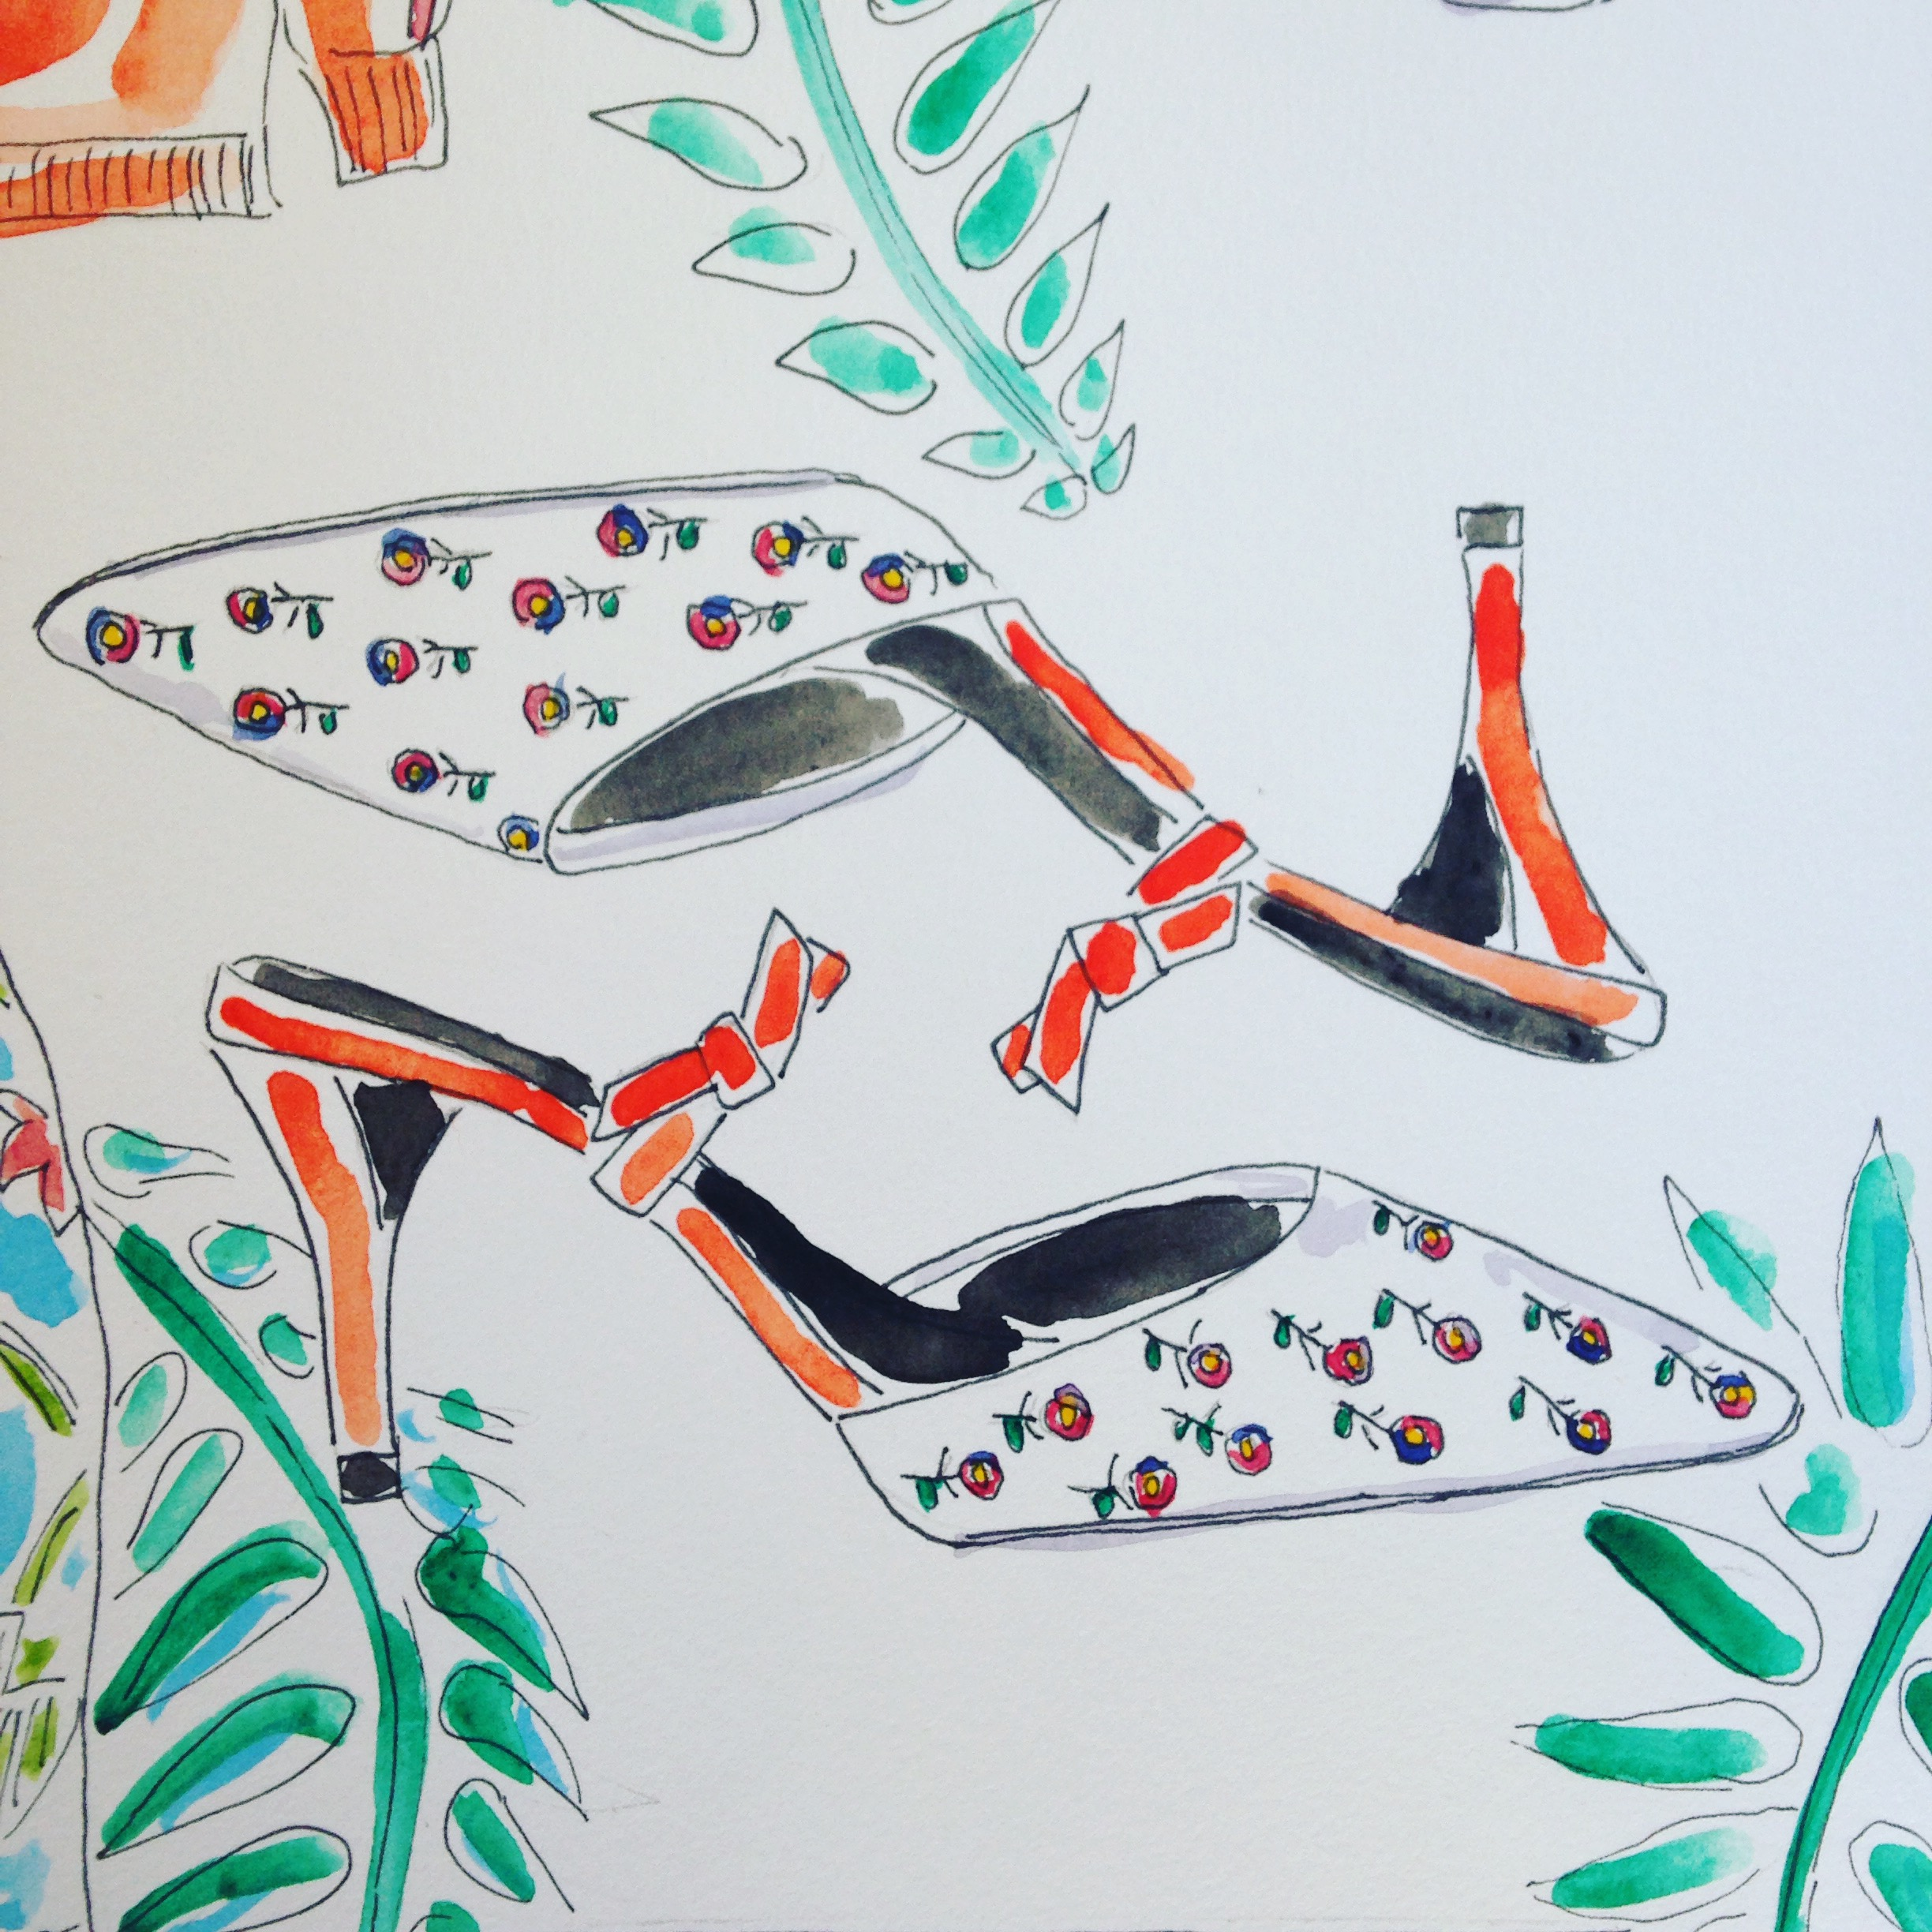 Roger Vivier Pumps available  here .